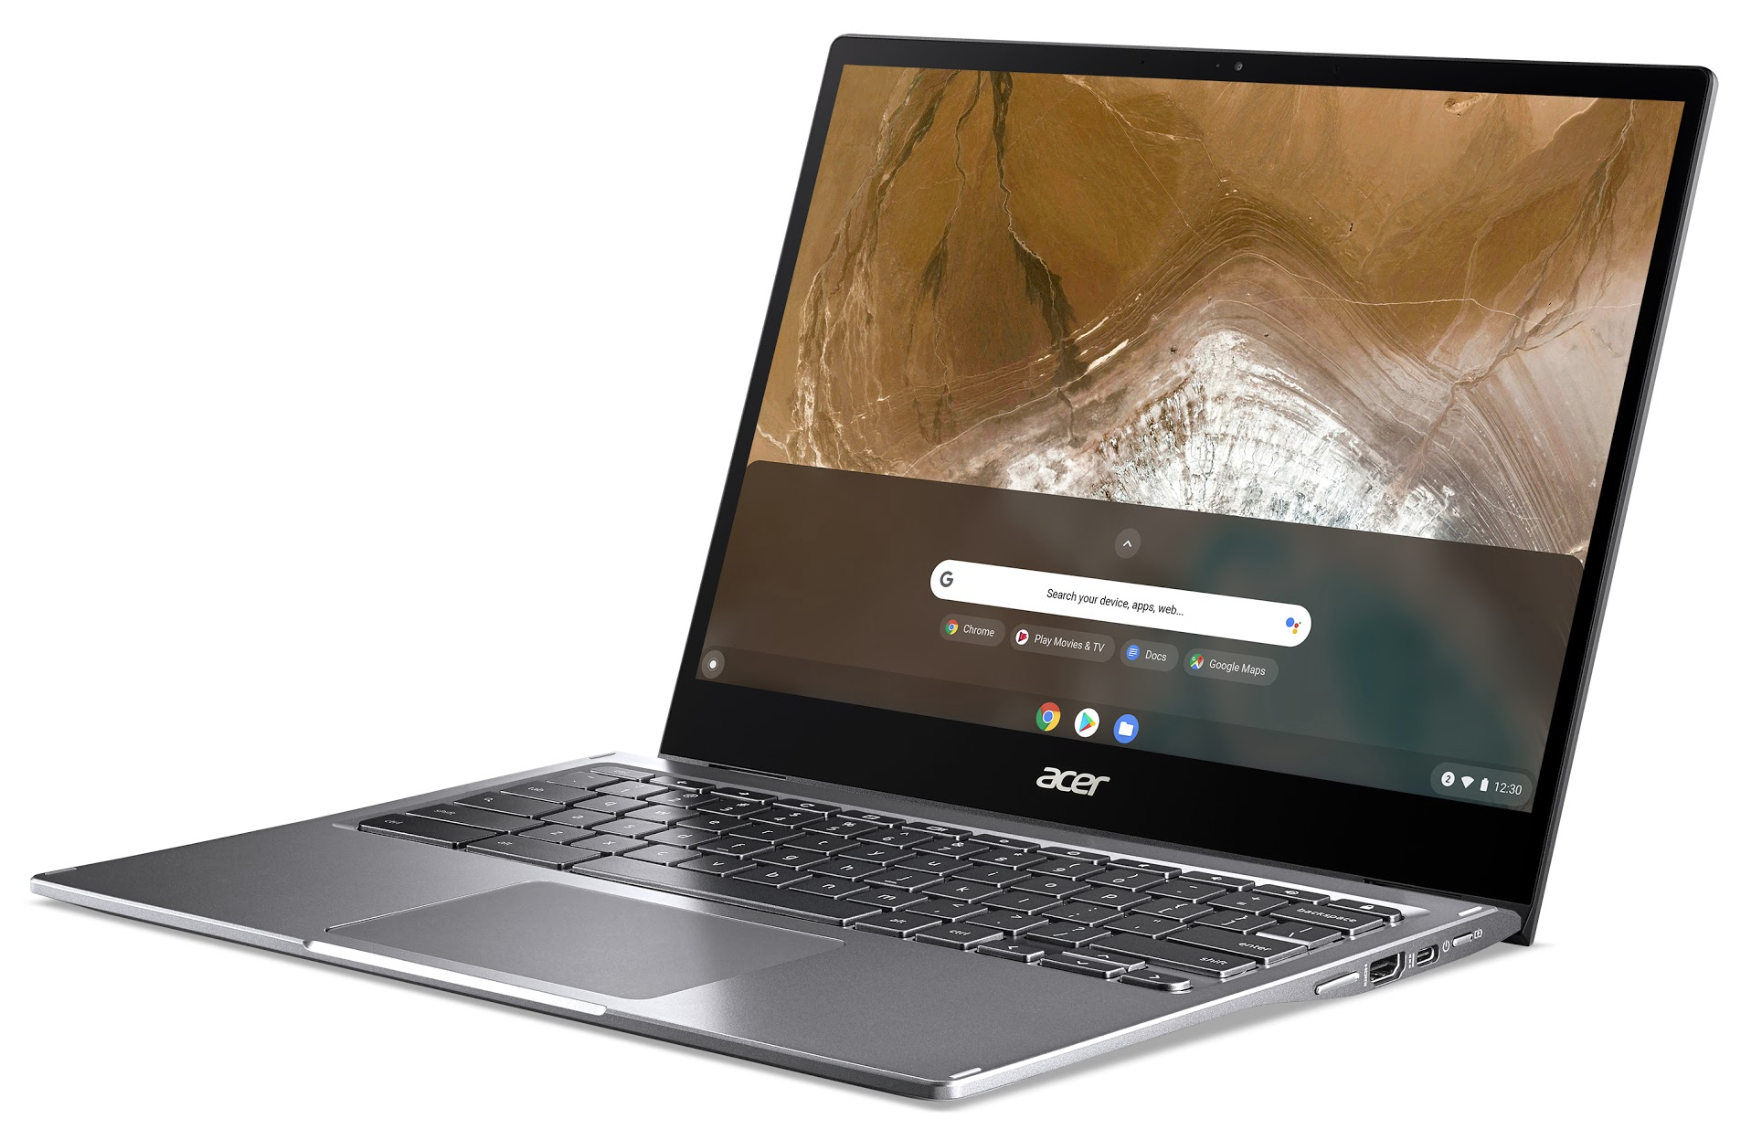 Chromebook Spin 713